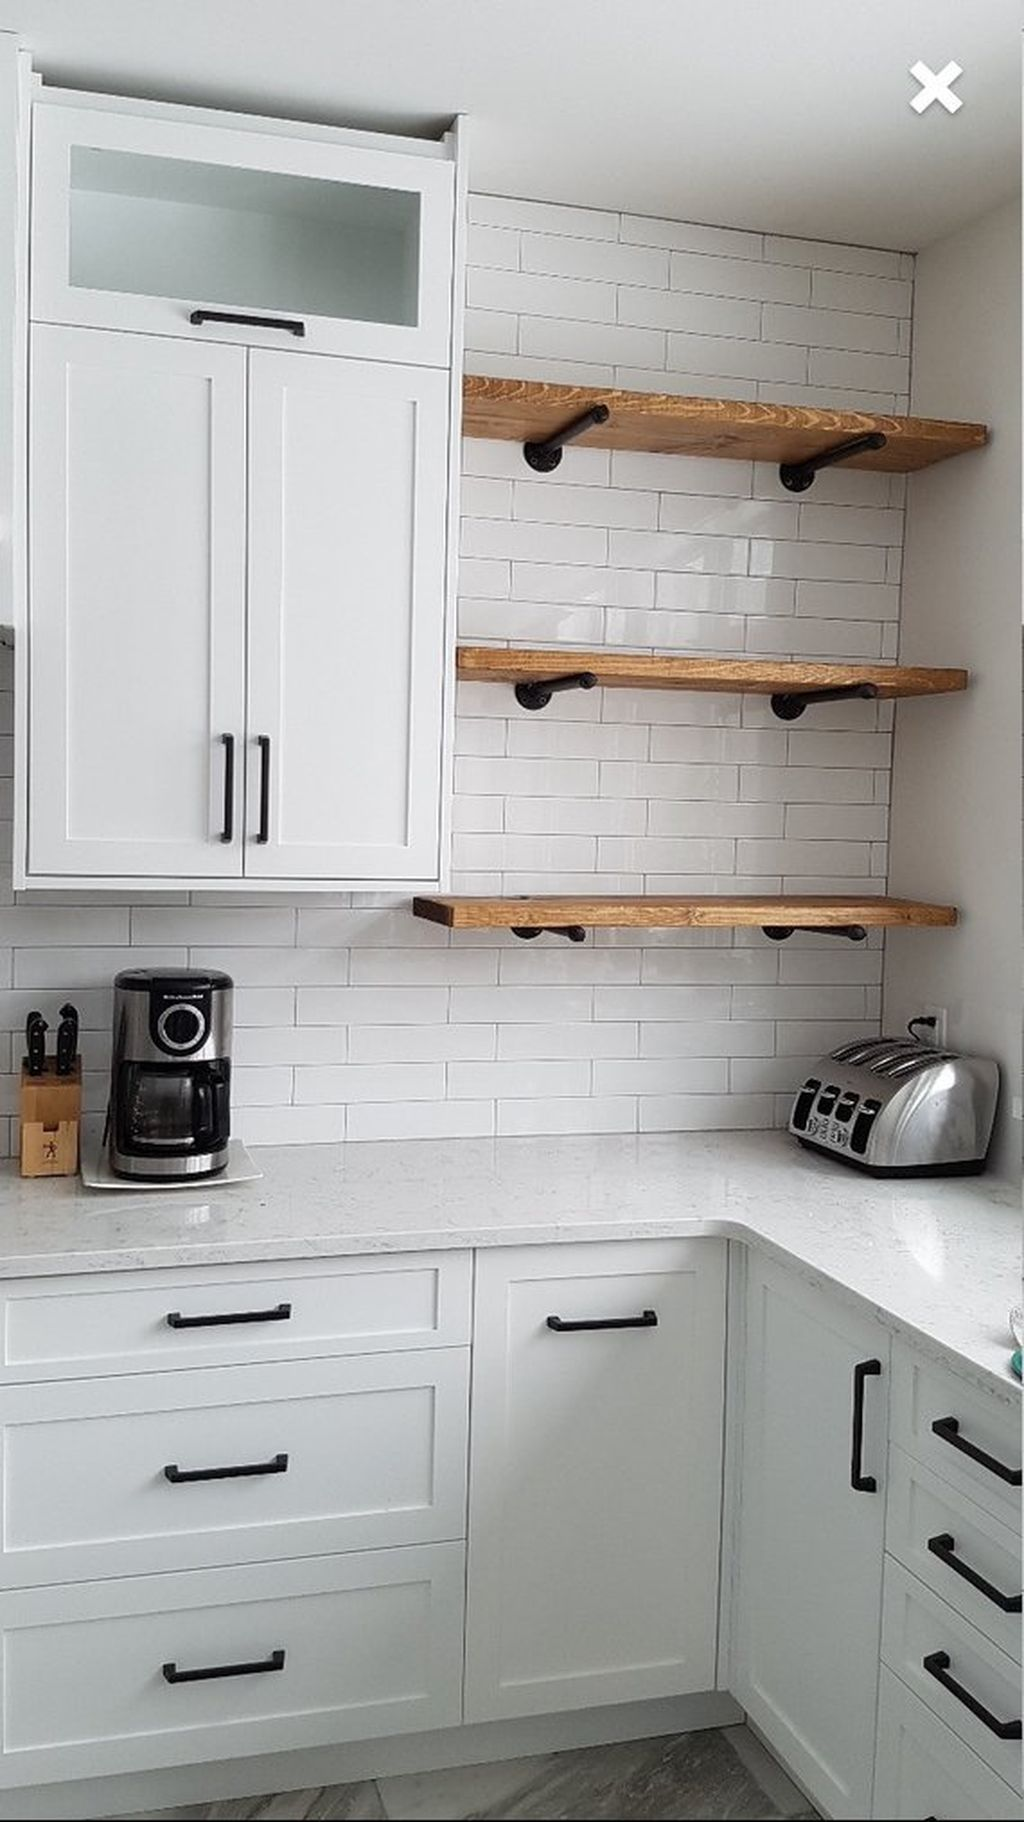 35 Gorgeous Kitchen Floating Shelves For Your Lovely Kitchen Small Kitchen Decor Kitchen Design Kitchen Renovation